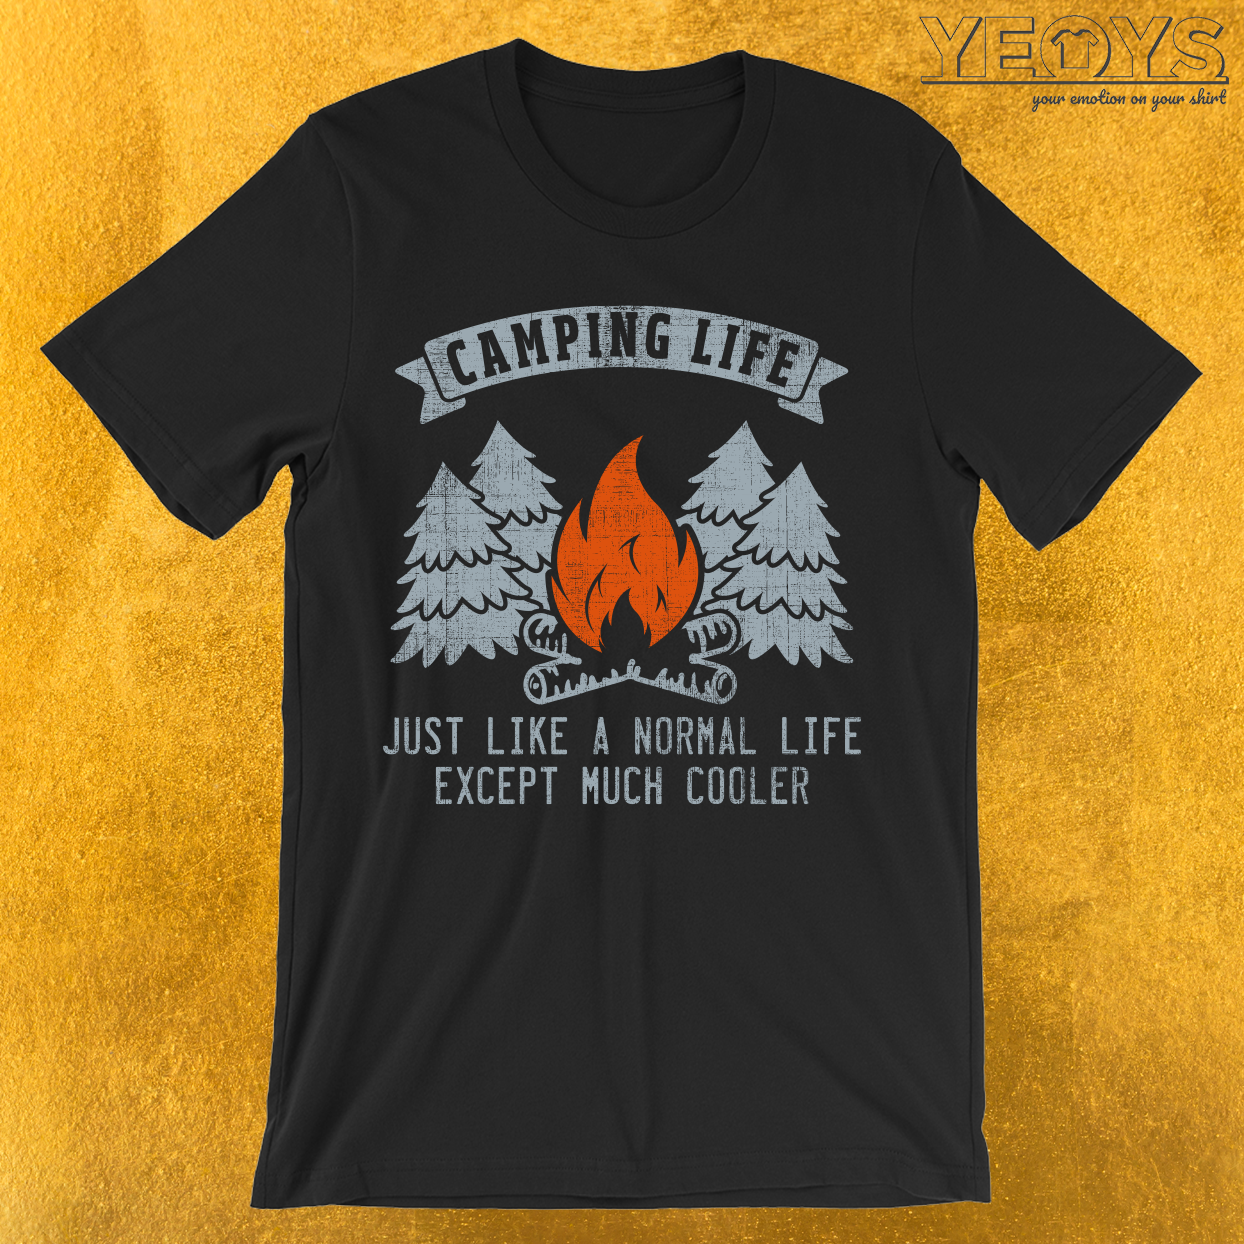 Camping Life Just Like A Normal Life T-Shirt